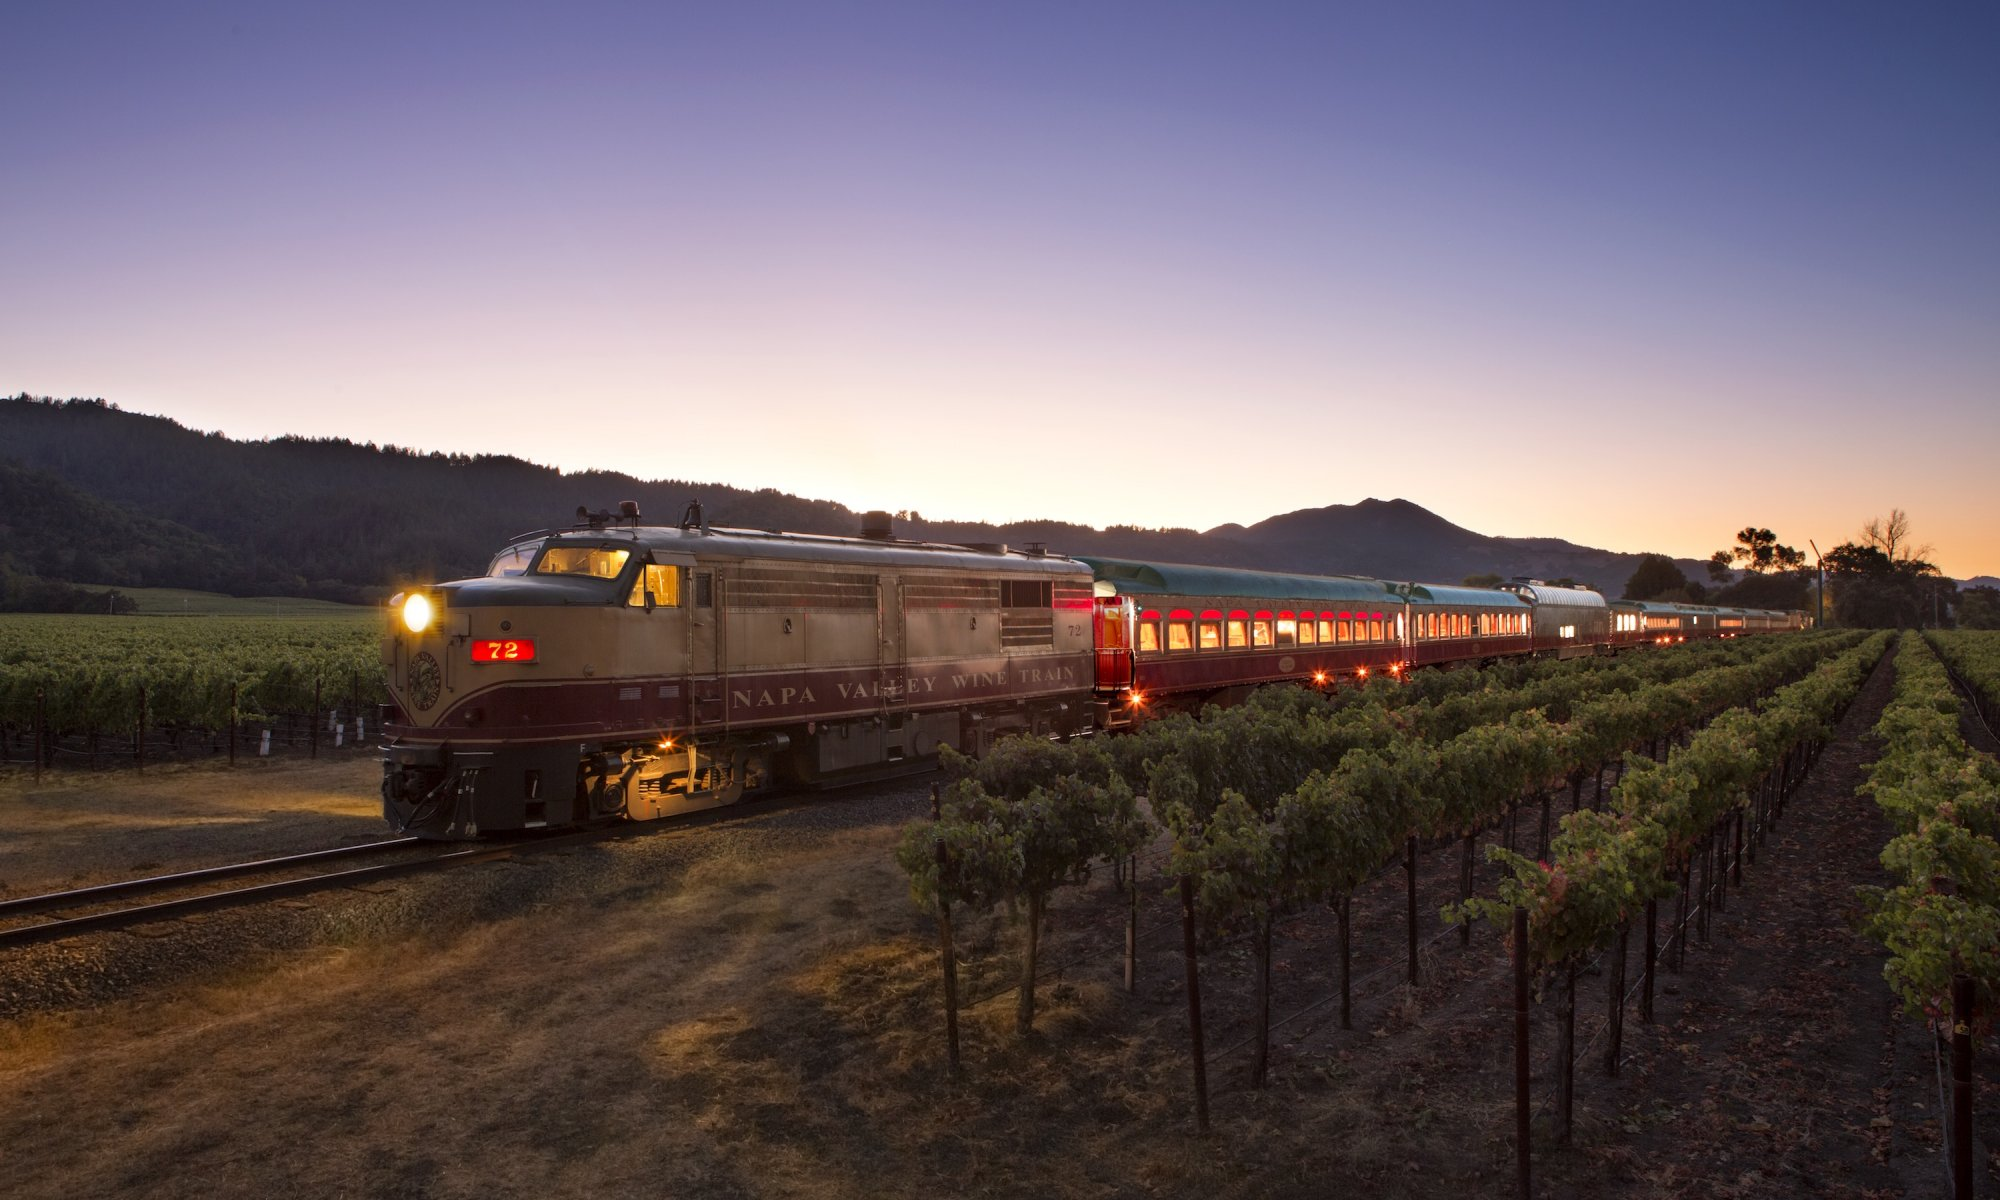 Napa Valley Wine Train travelling through vineyards with sunset in the distance